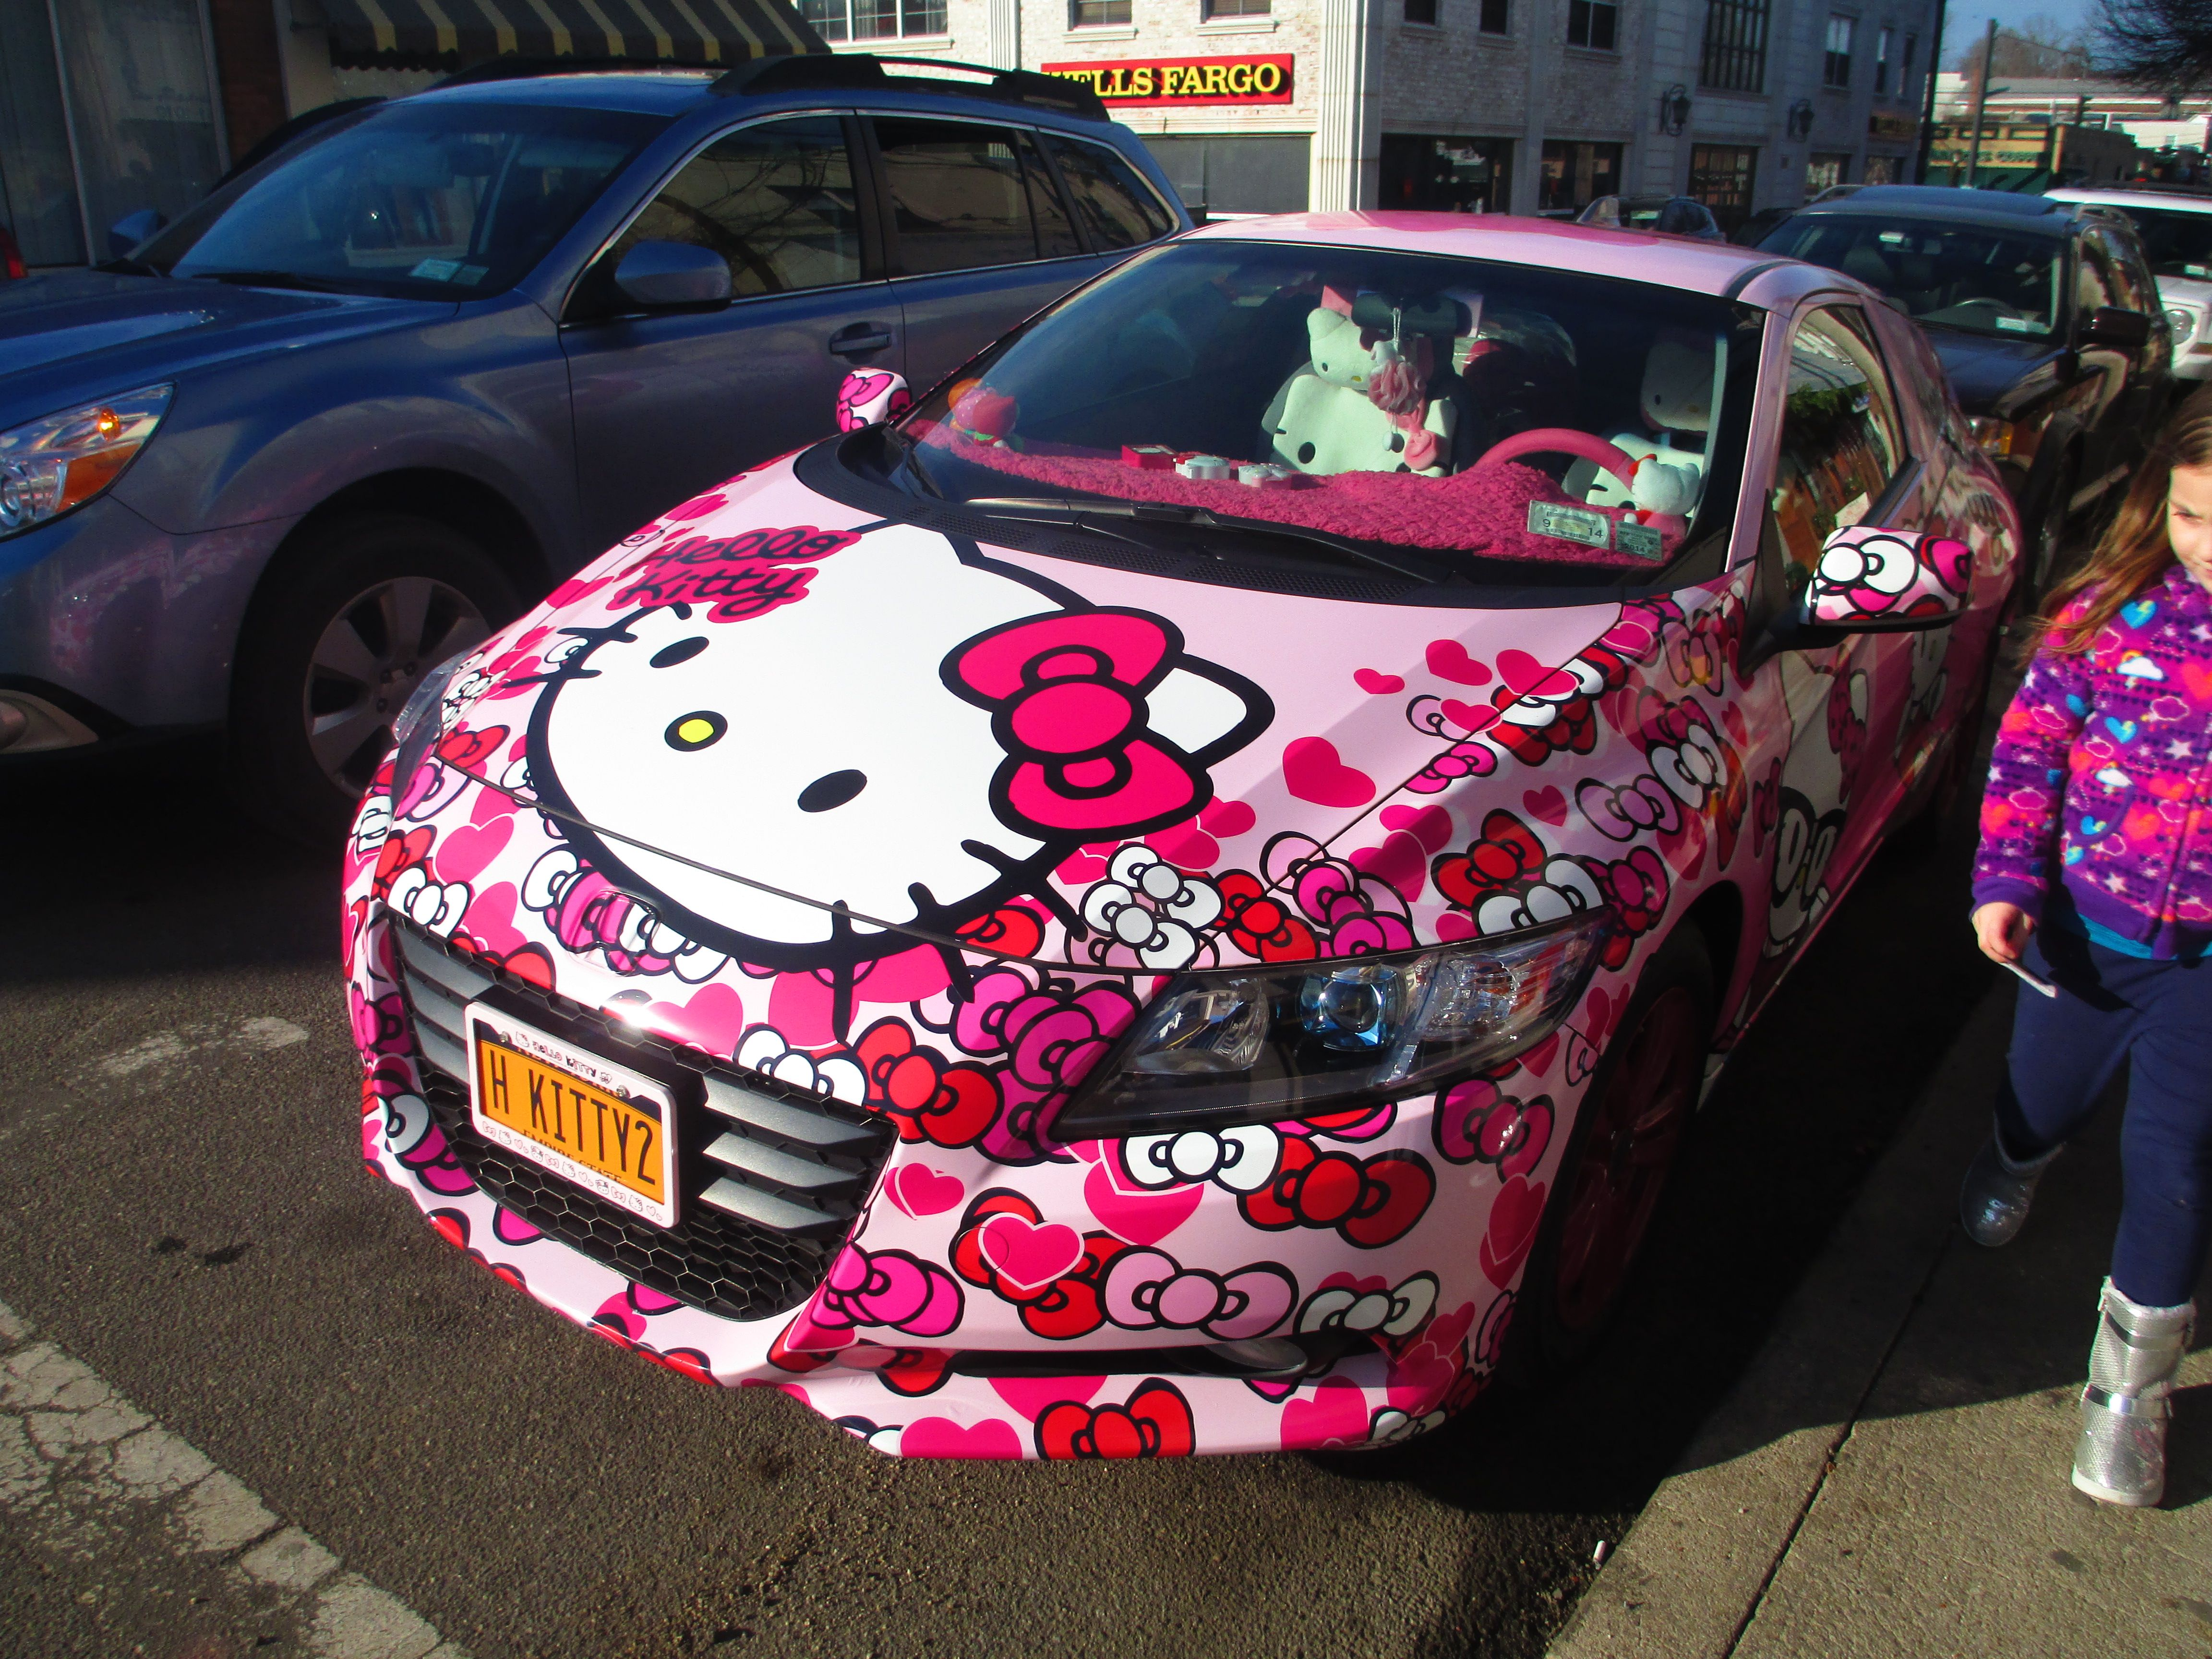 les 25 meilleures id es de la cat gorie voiture hello kitty sur pinterest bonjour choses kitty. Black Bedroom Furniture Sets. Home Design Ideas